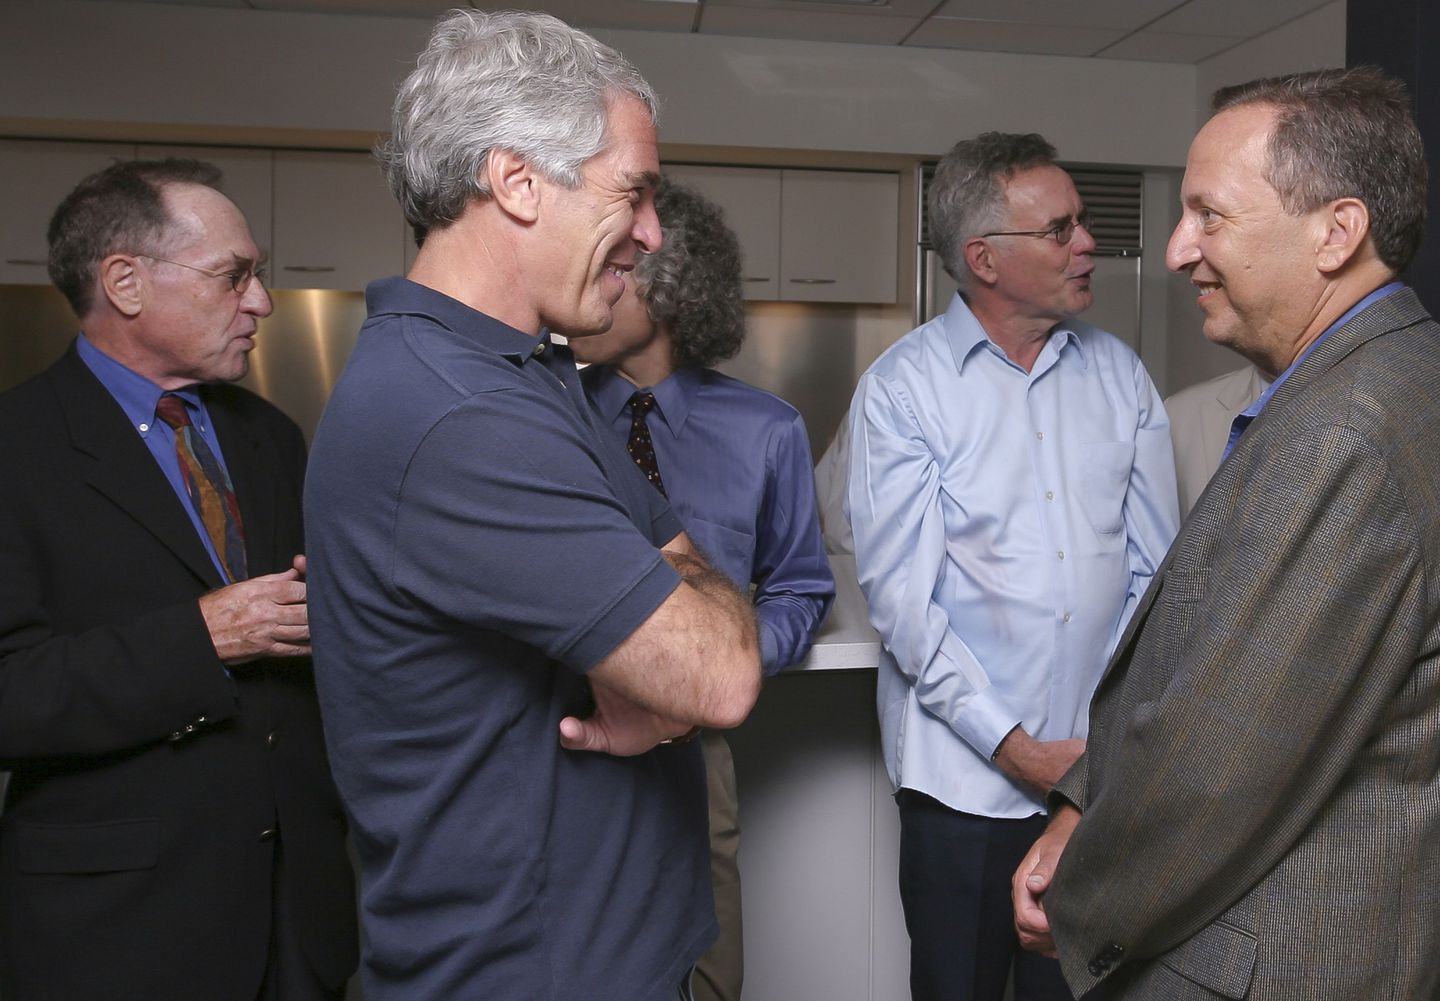 Jeffrey Epstein (second from left) hosted a dinner at Harvard in 2004. With him were (from left) Alan Dershowitz, Robert Trivers, and Lawrence Summers.